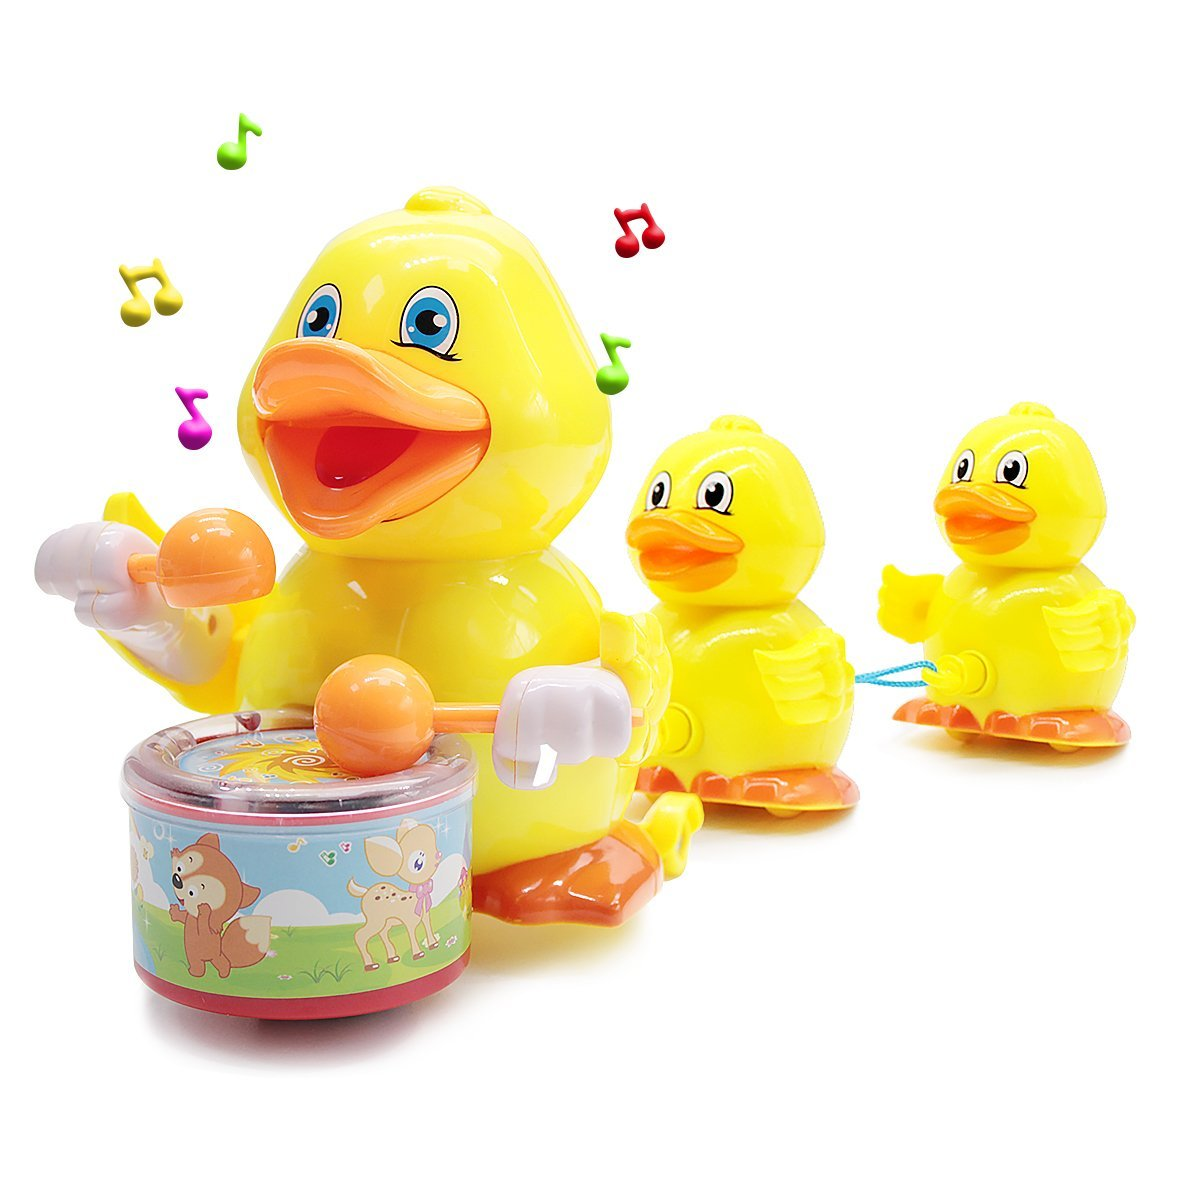 Yellow Duck Toys, Musical Toy Walking Singing Ducklings Following Mom Duck Play Drum Flashing LED Light Bump Go Wheel Gifts Baby Infants Toddlers Kids 1 2 3 Year Old